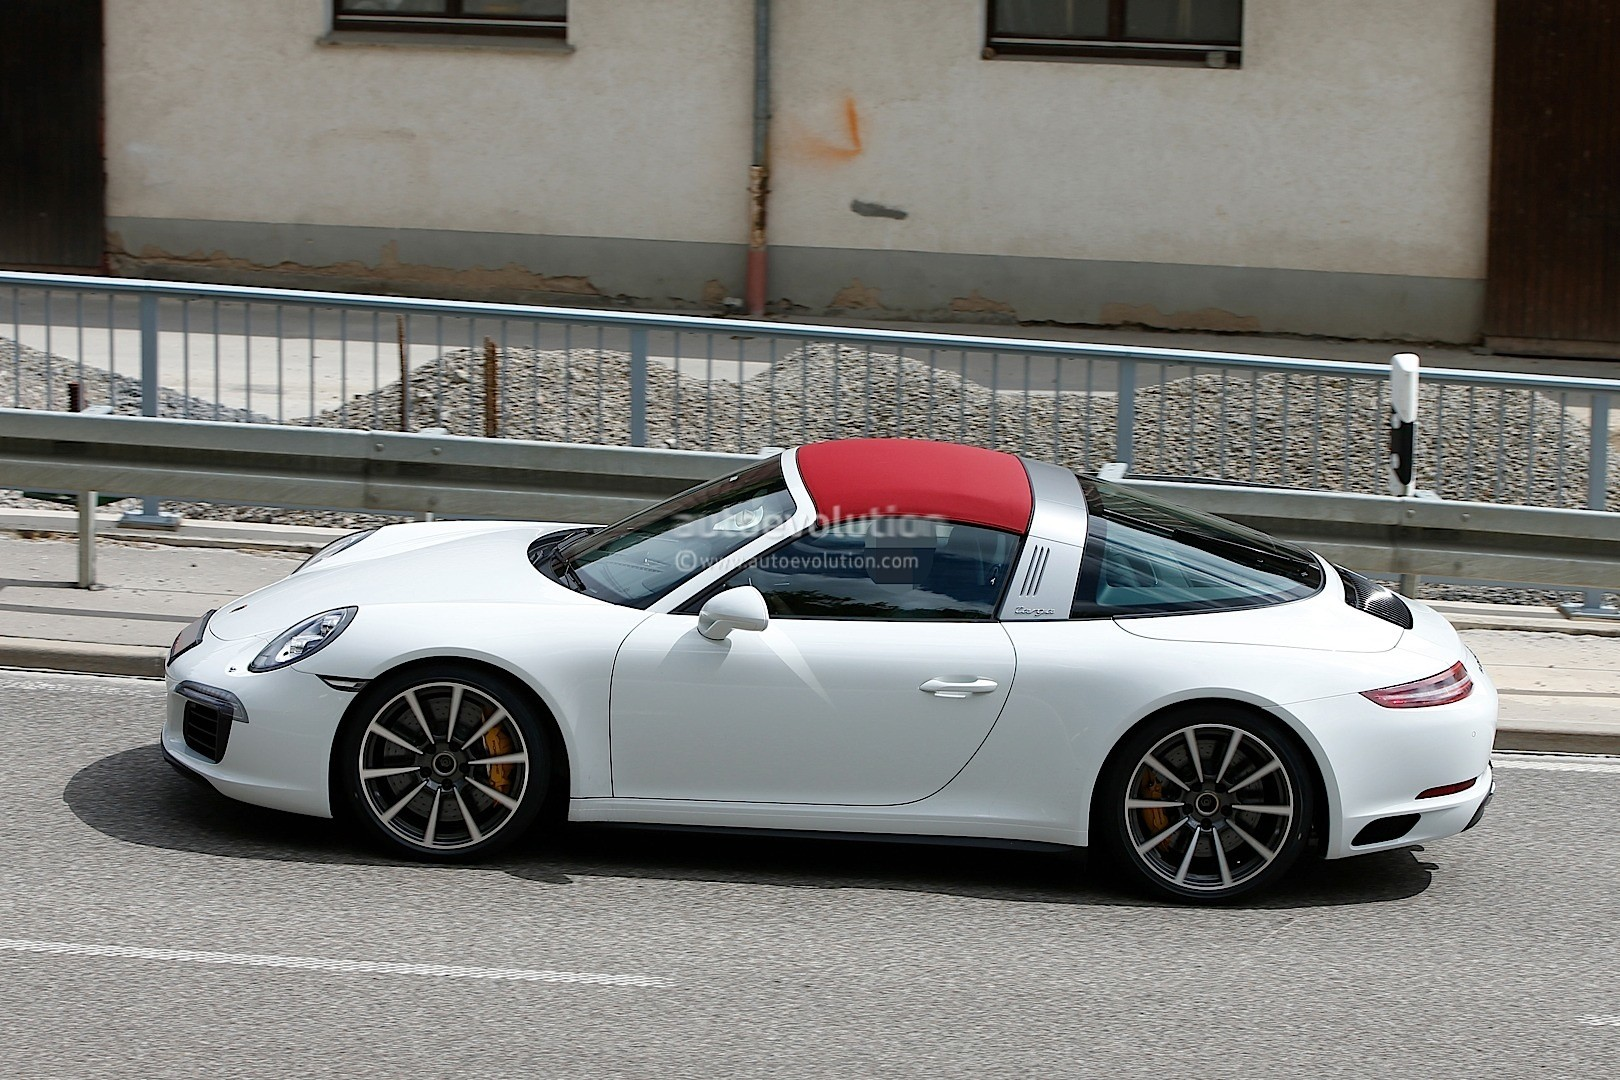 2016 Porsche 911 Facelift Interior Revealed In Fresh